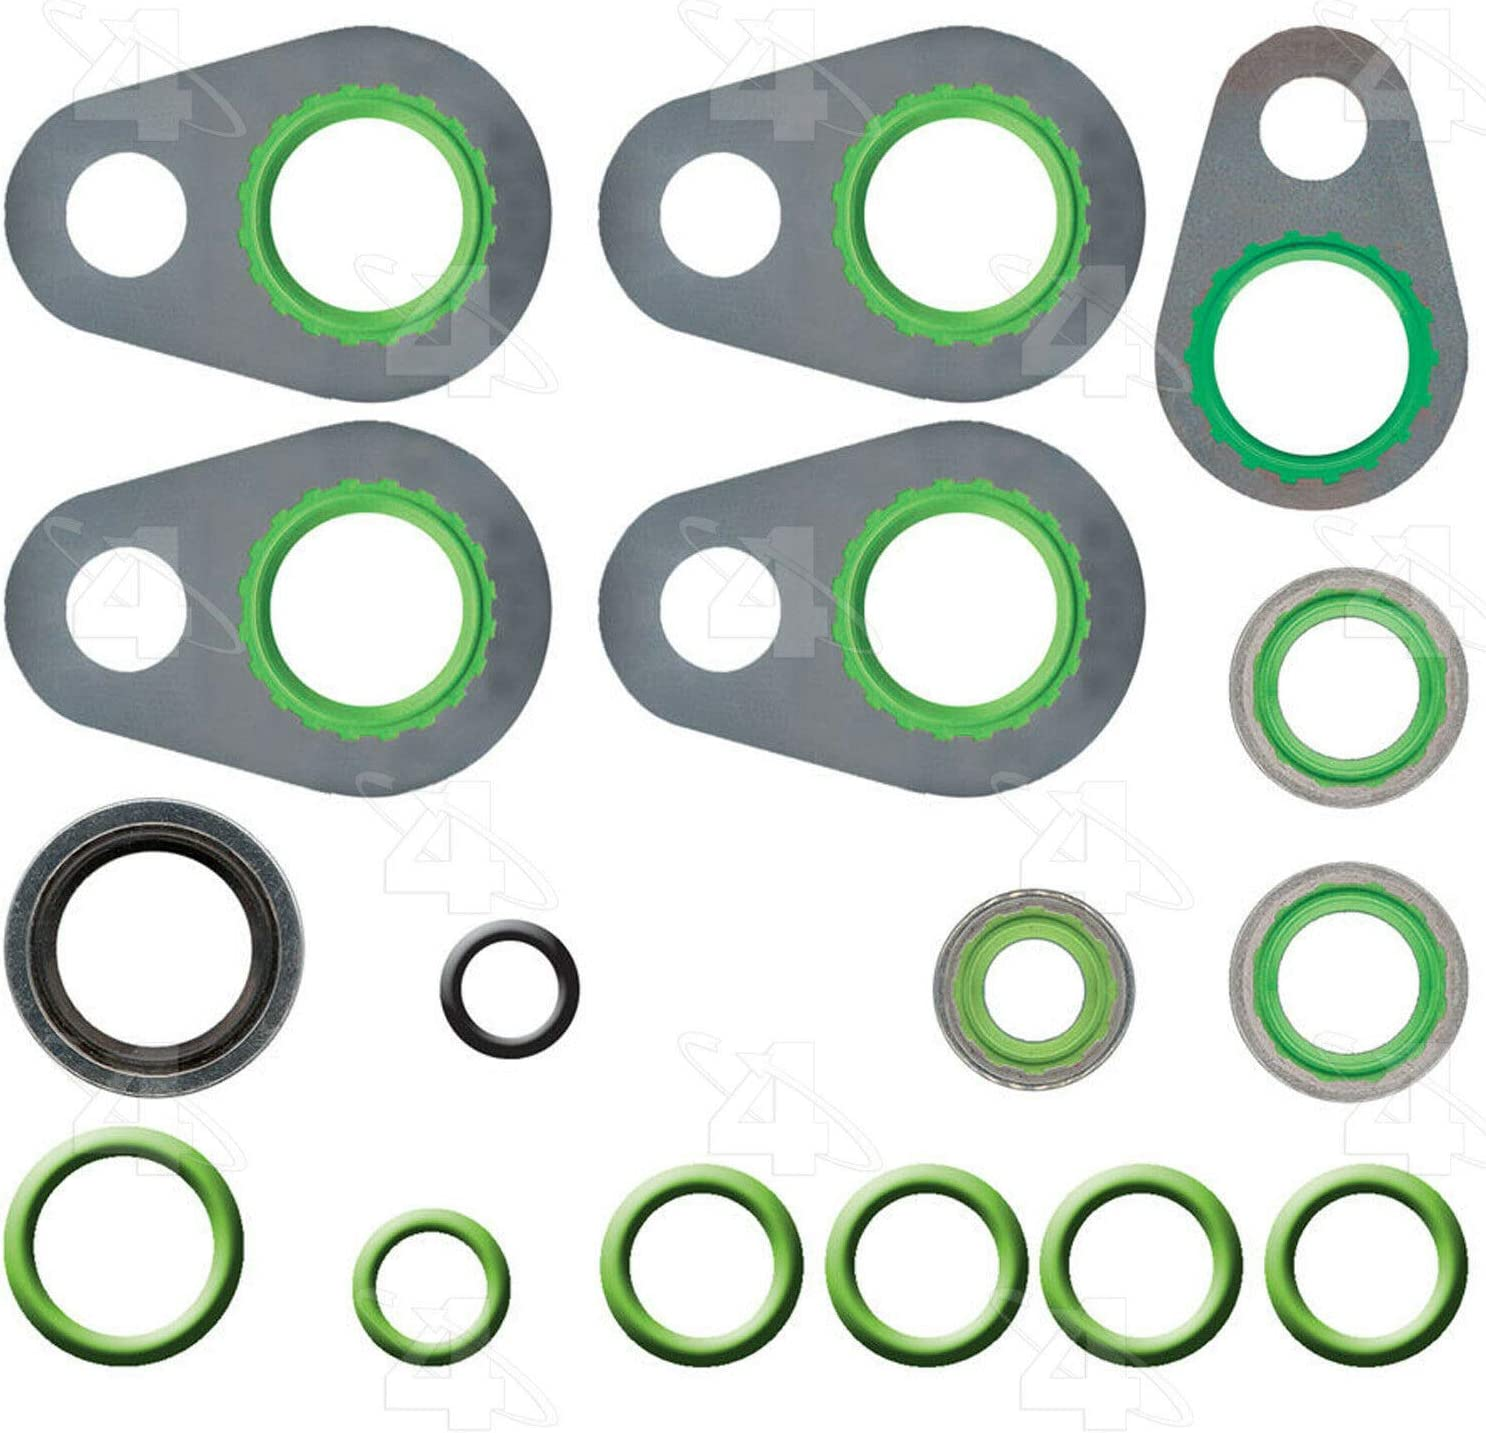 Four Seasons 26817 A//C System O-Ring and Gasket Kit